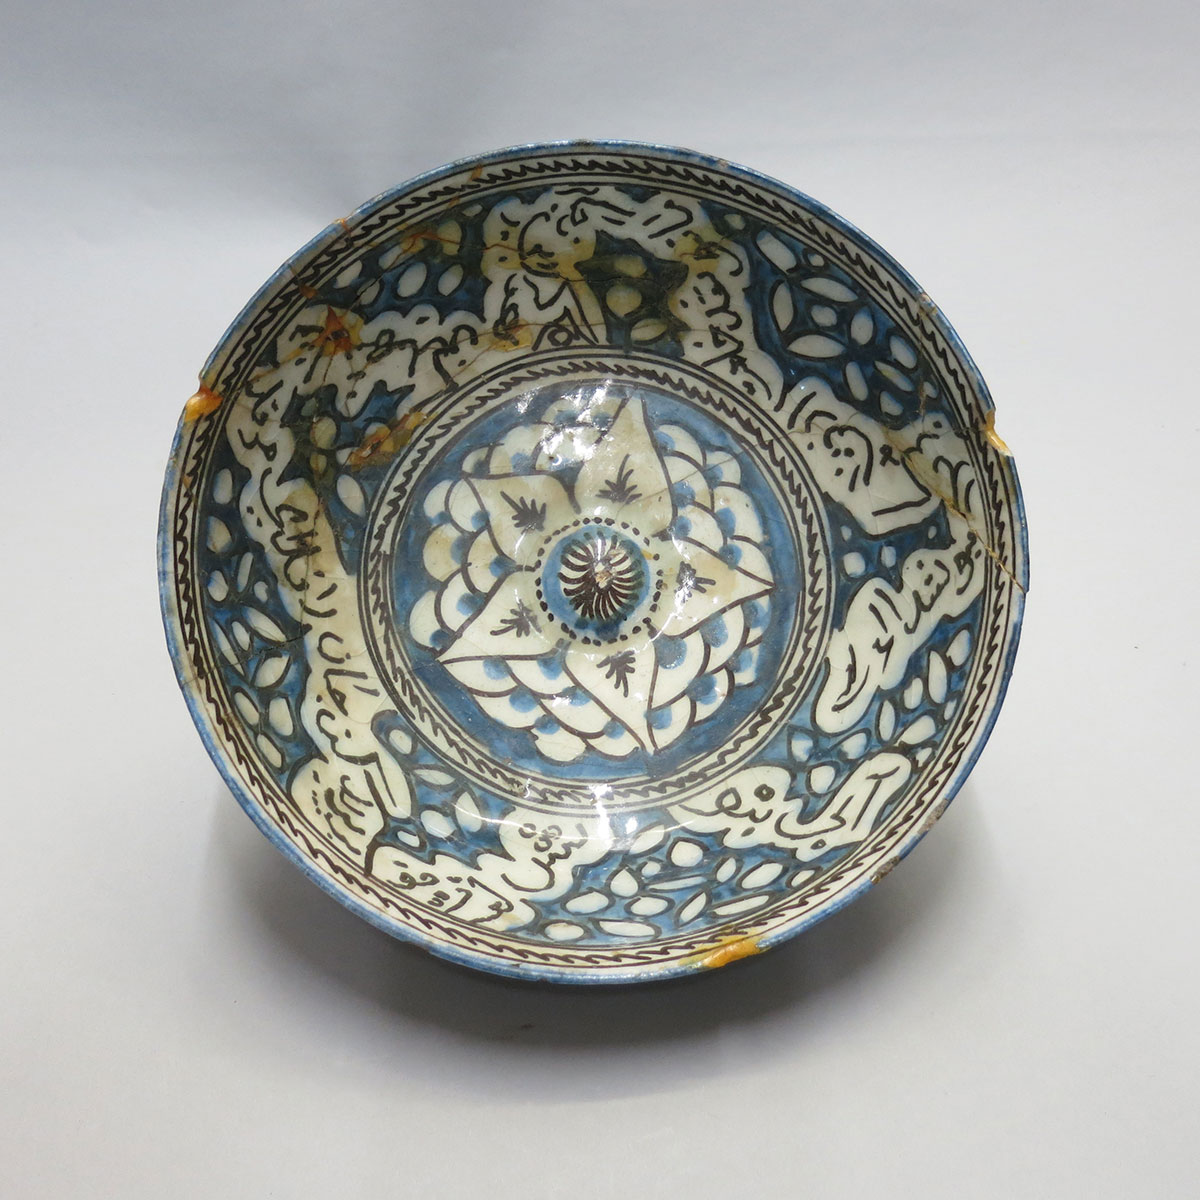 Kashan Pottery 'Islamic Script' Bowl, 14th to 16th Century